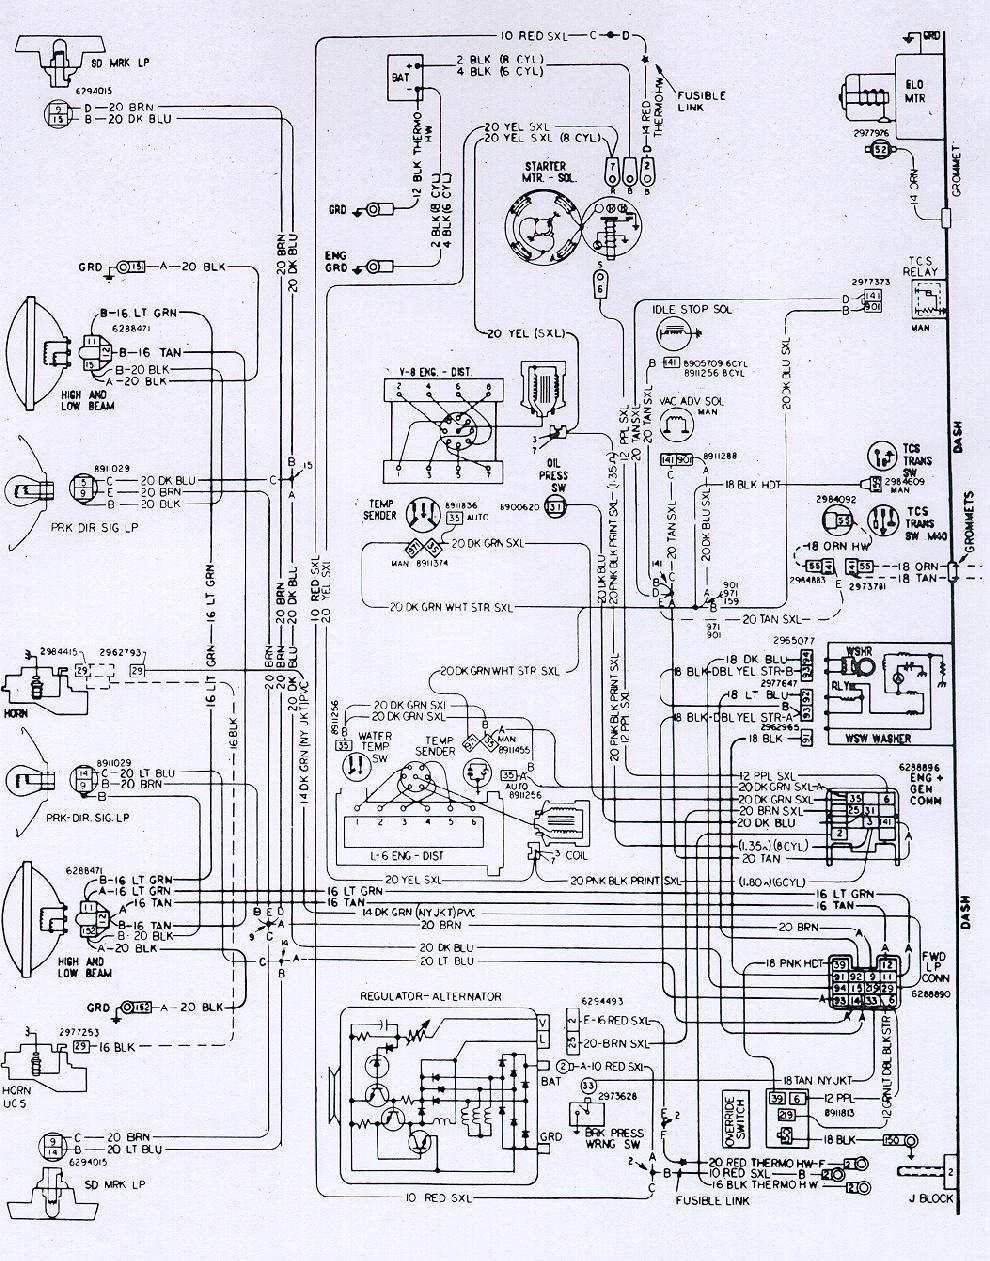 medium resolution of 1971 camaro amp gauge wiring diagram wiring diagram blogs 1969 chevy camaro wiring 71 camaro amp gauge wiring diagram